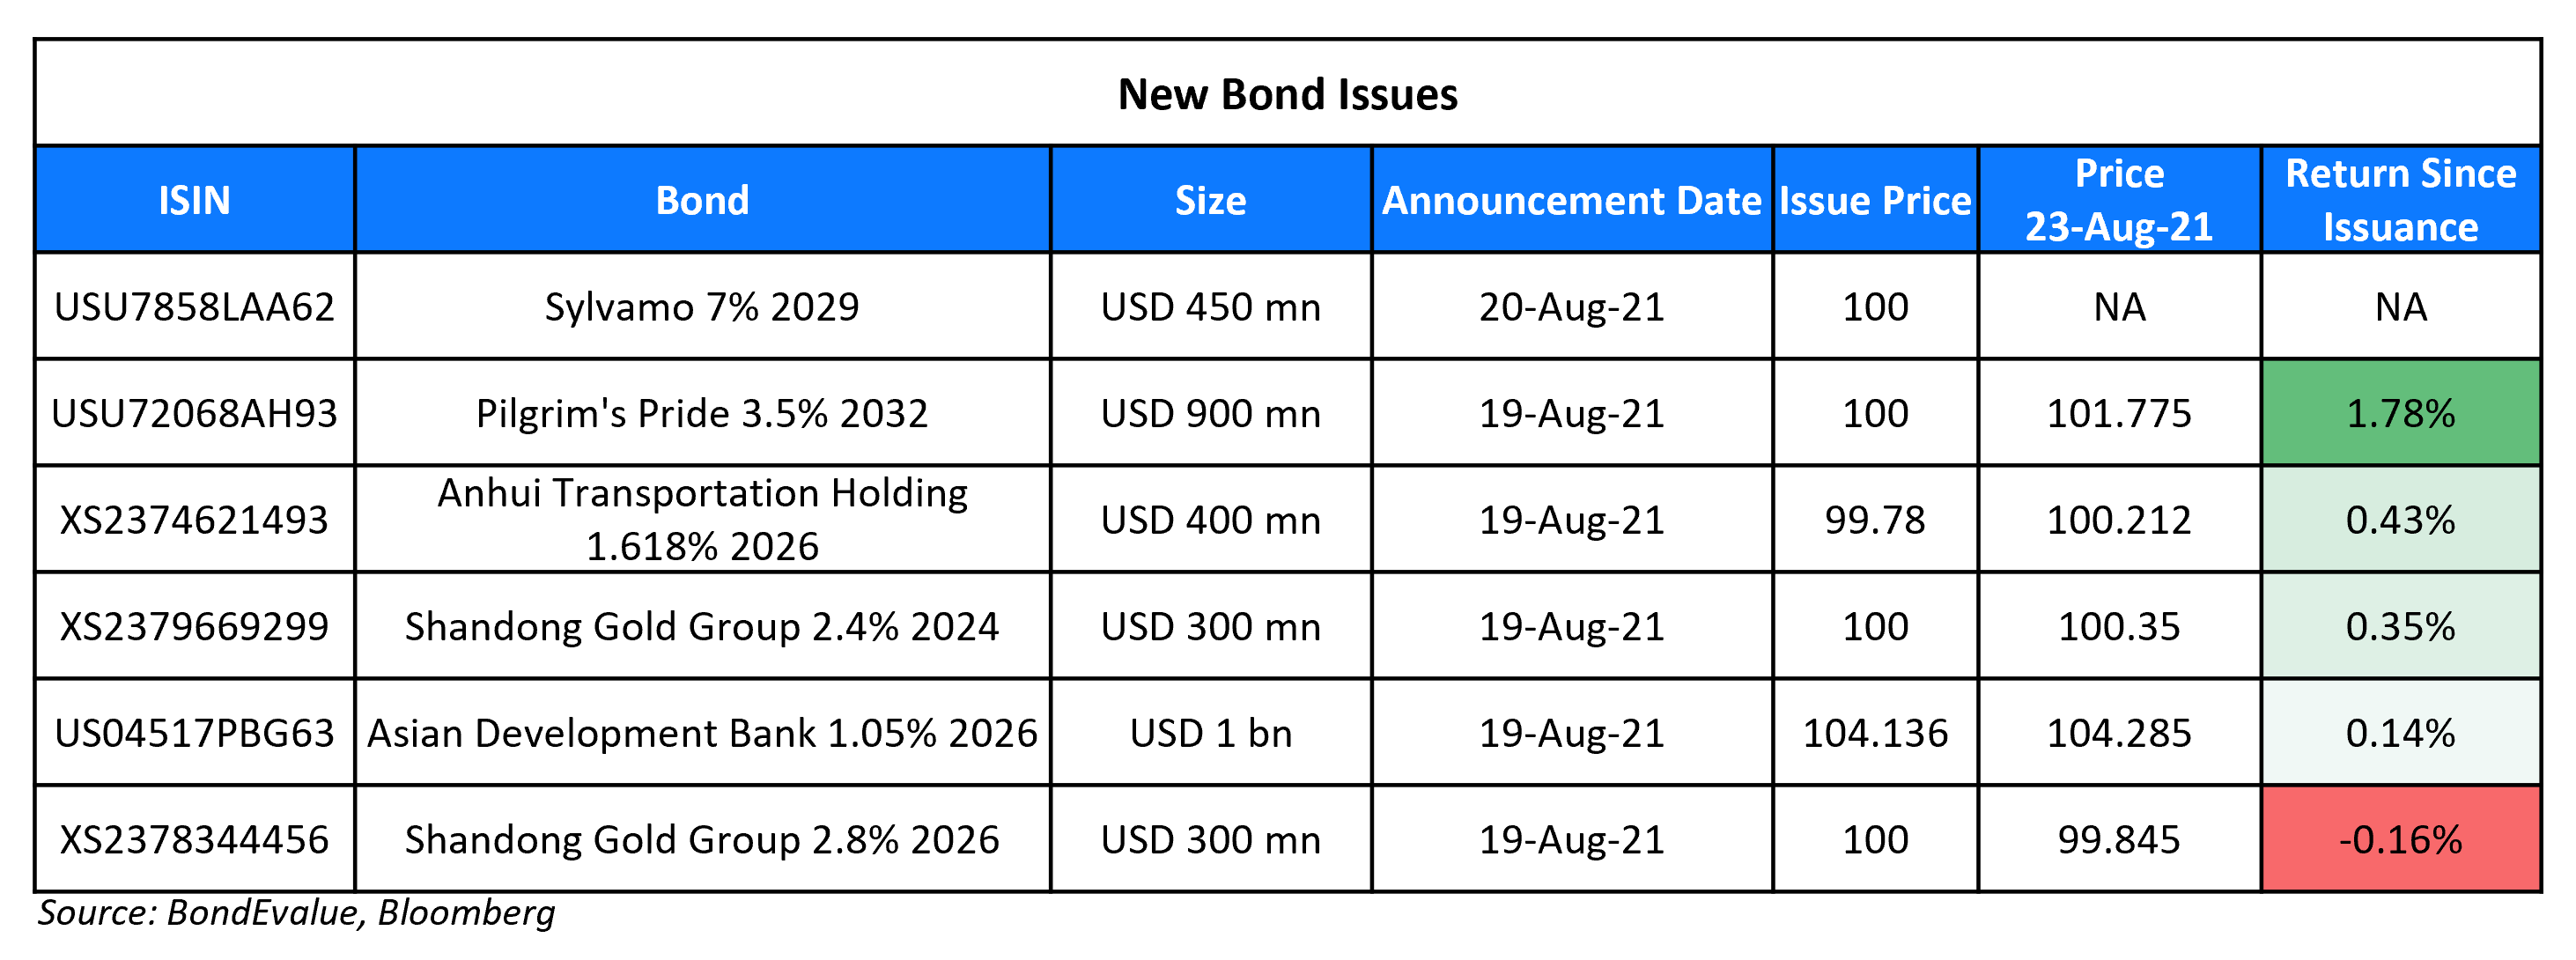 New Bond Issues 23 Aug